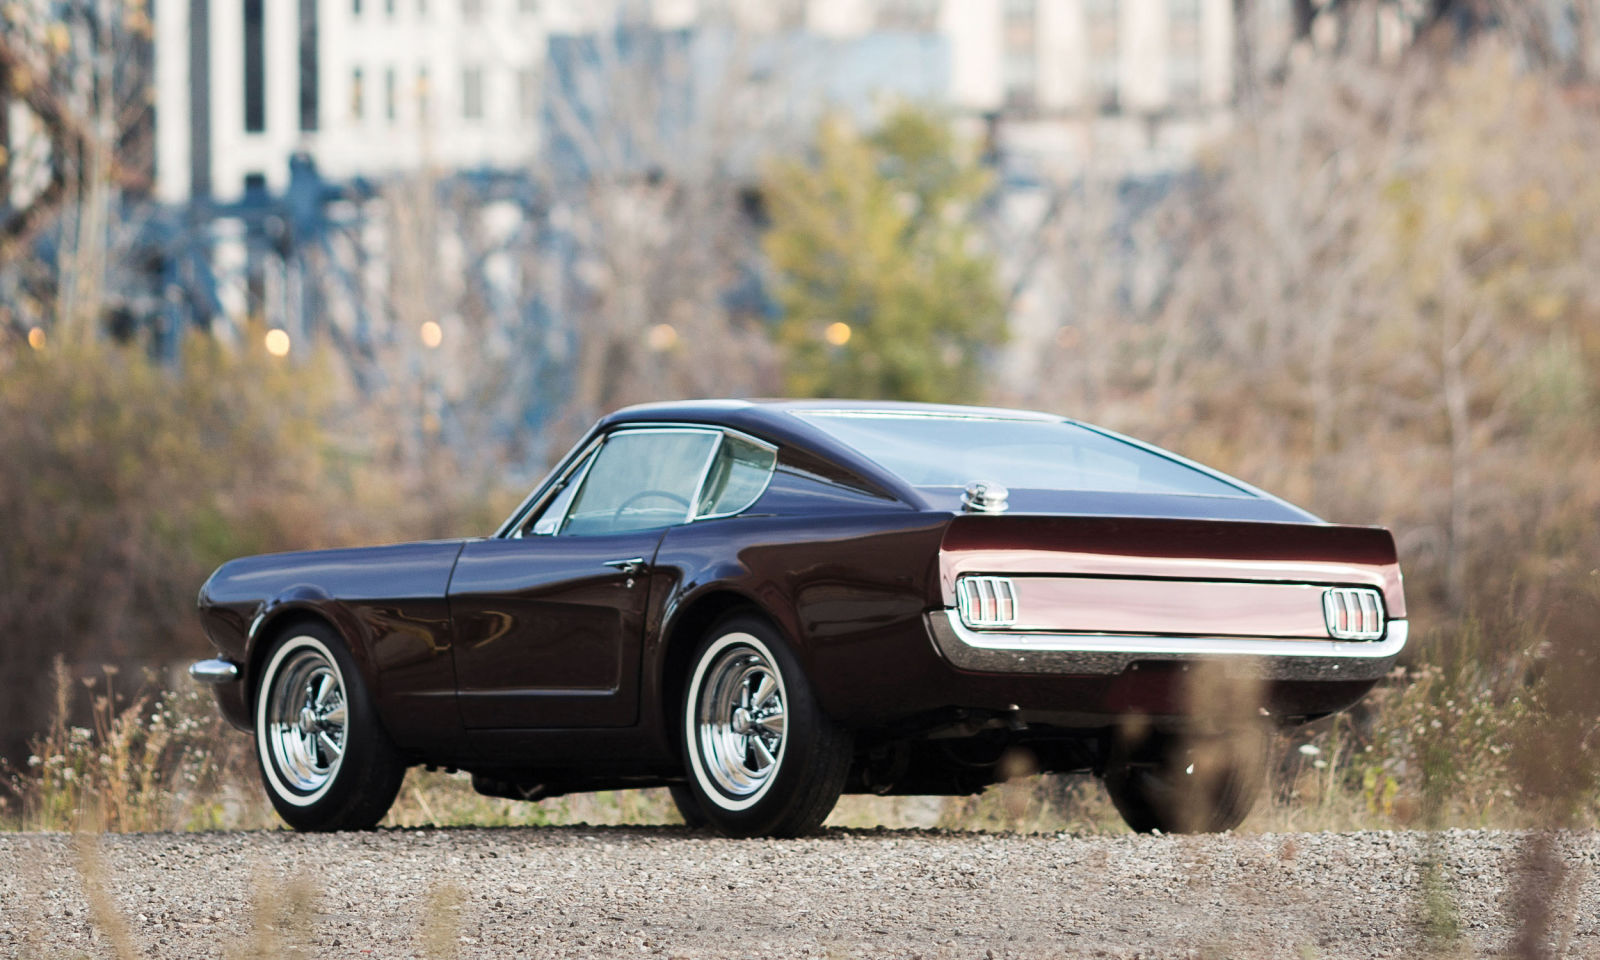 Max Power Cars Wallpaper Shorty Mustang Heading To Auction Expected To Fetch Over